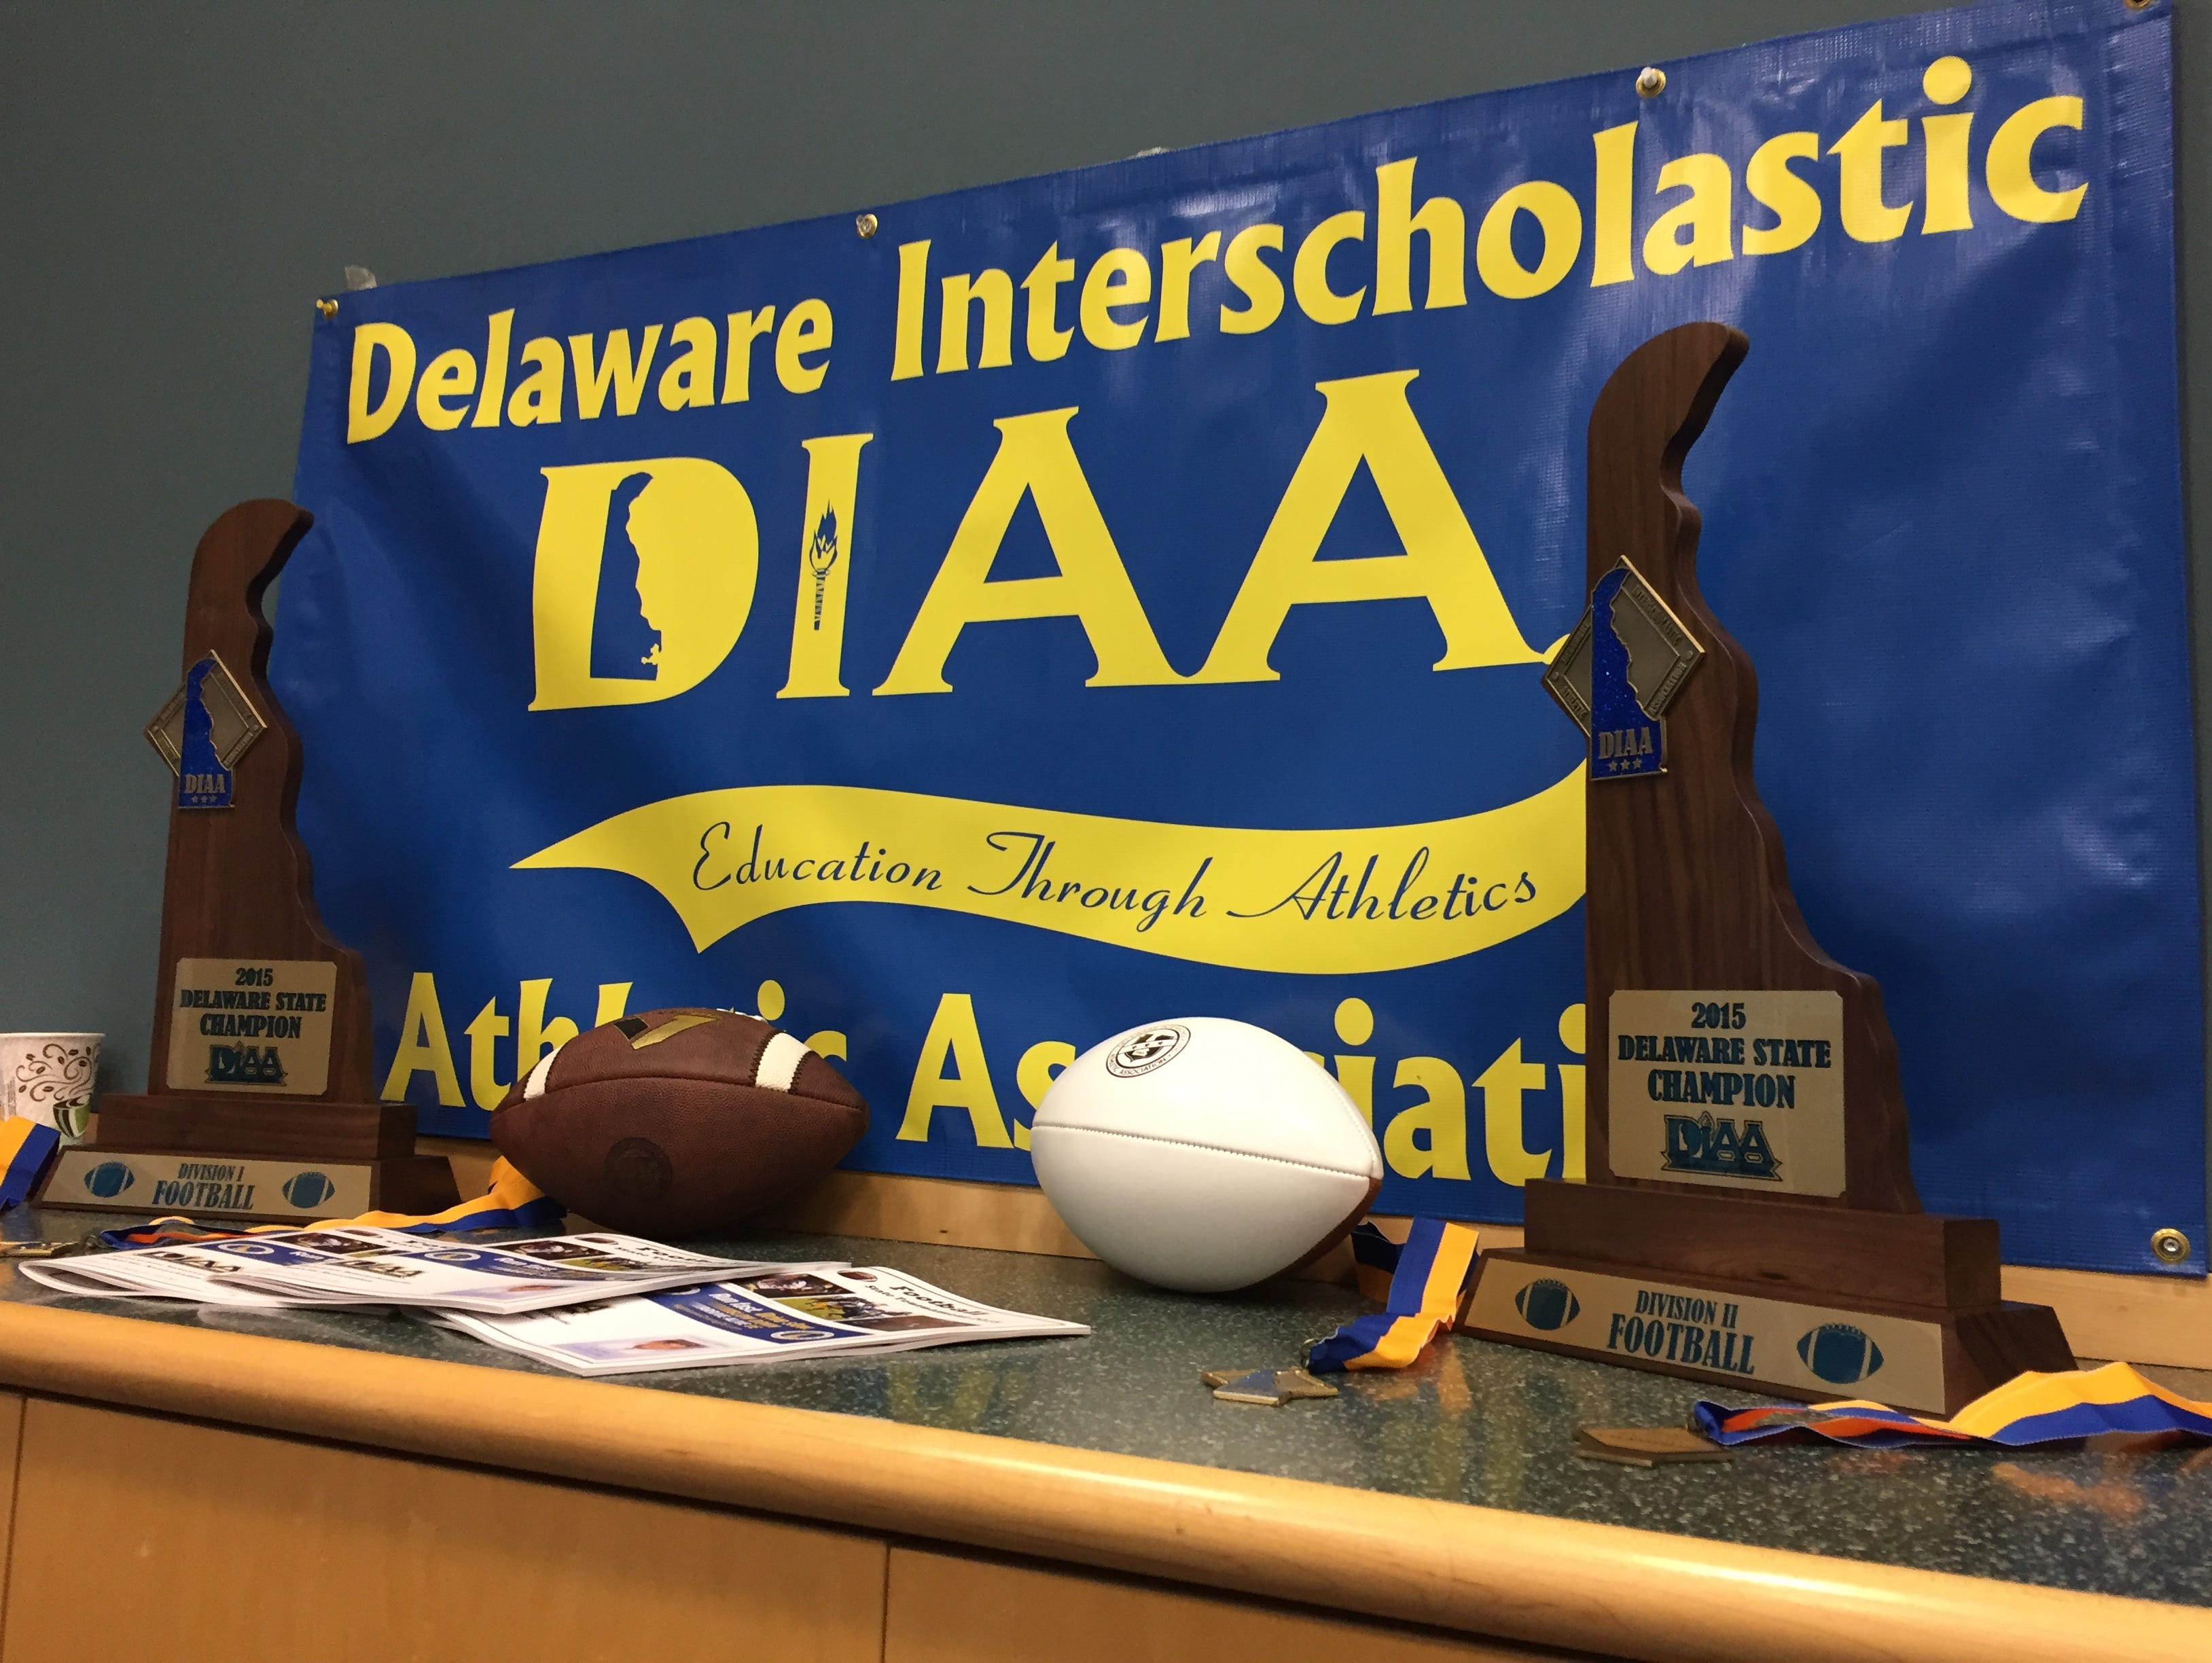 The Division I and II football trophies were on display at The News Journal on Monday.